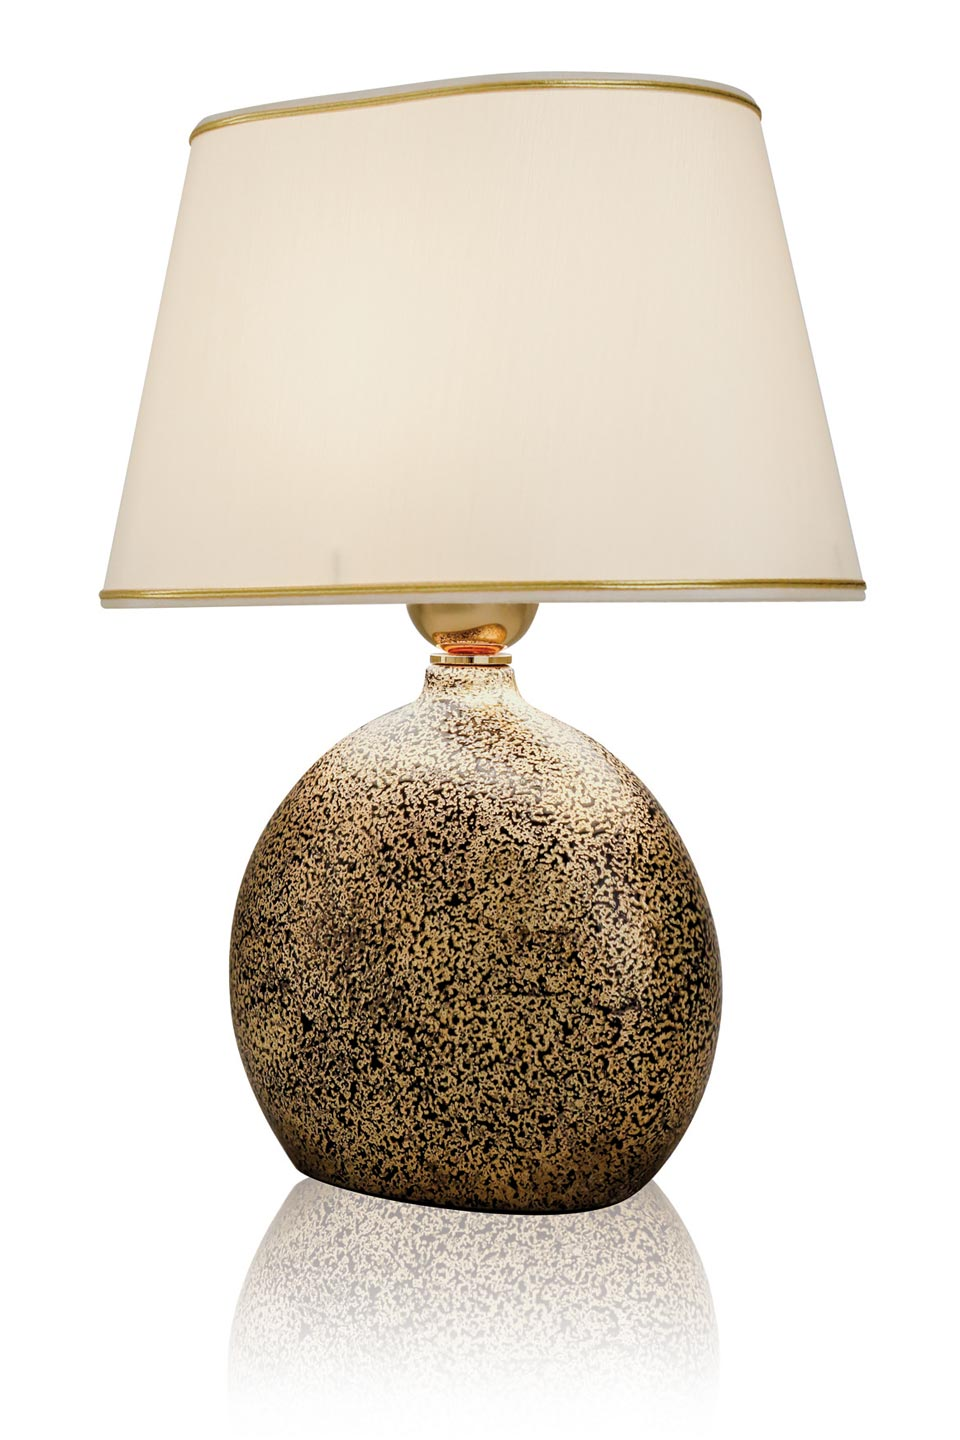 Hel small mottled ceramic table lamp. Le Dauphin.